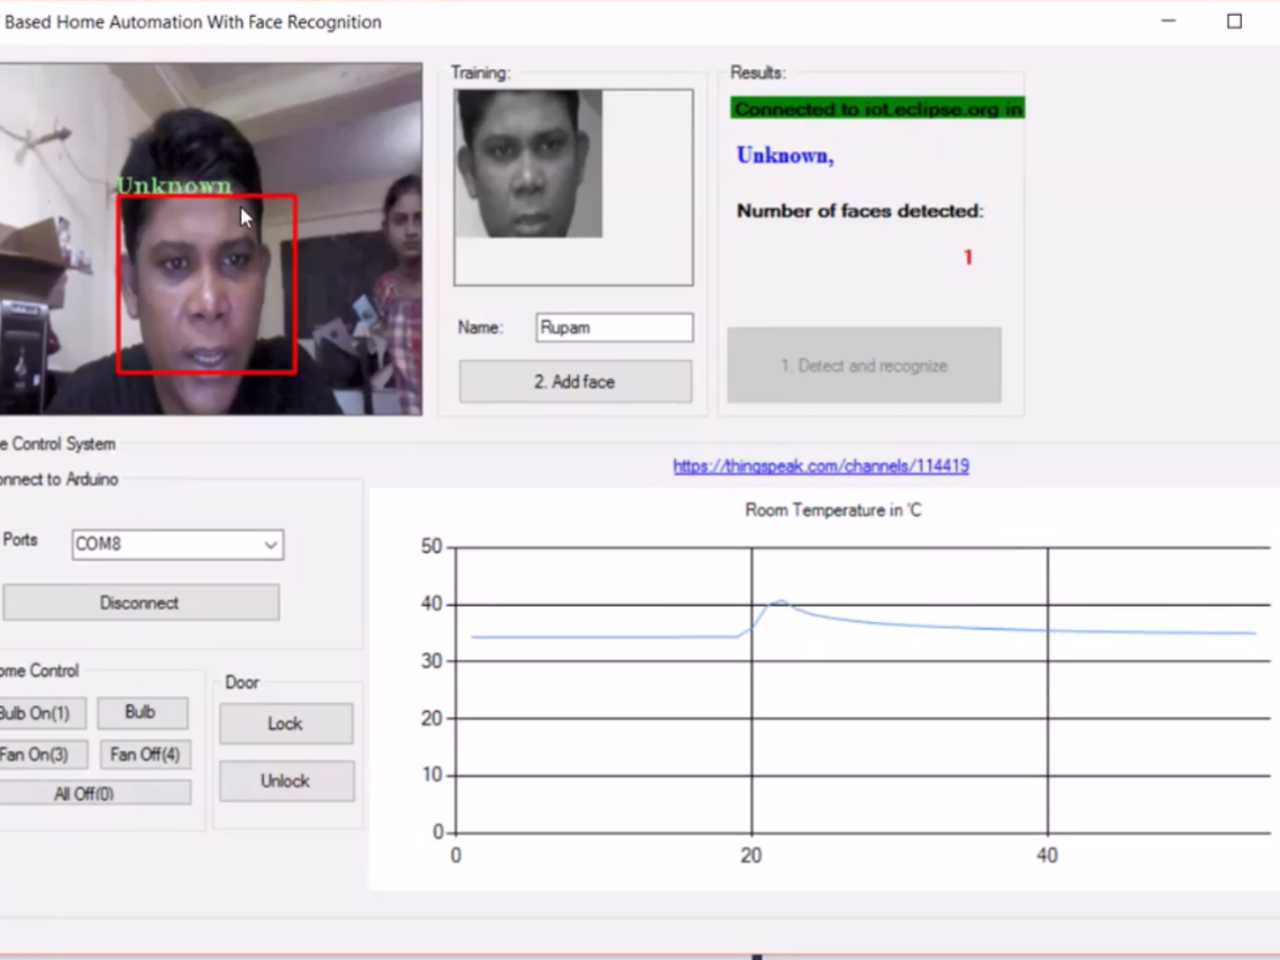 IoT based Home Automation With Face Recognition